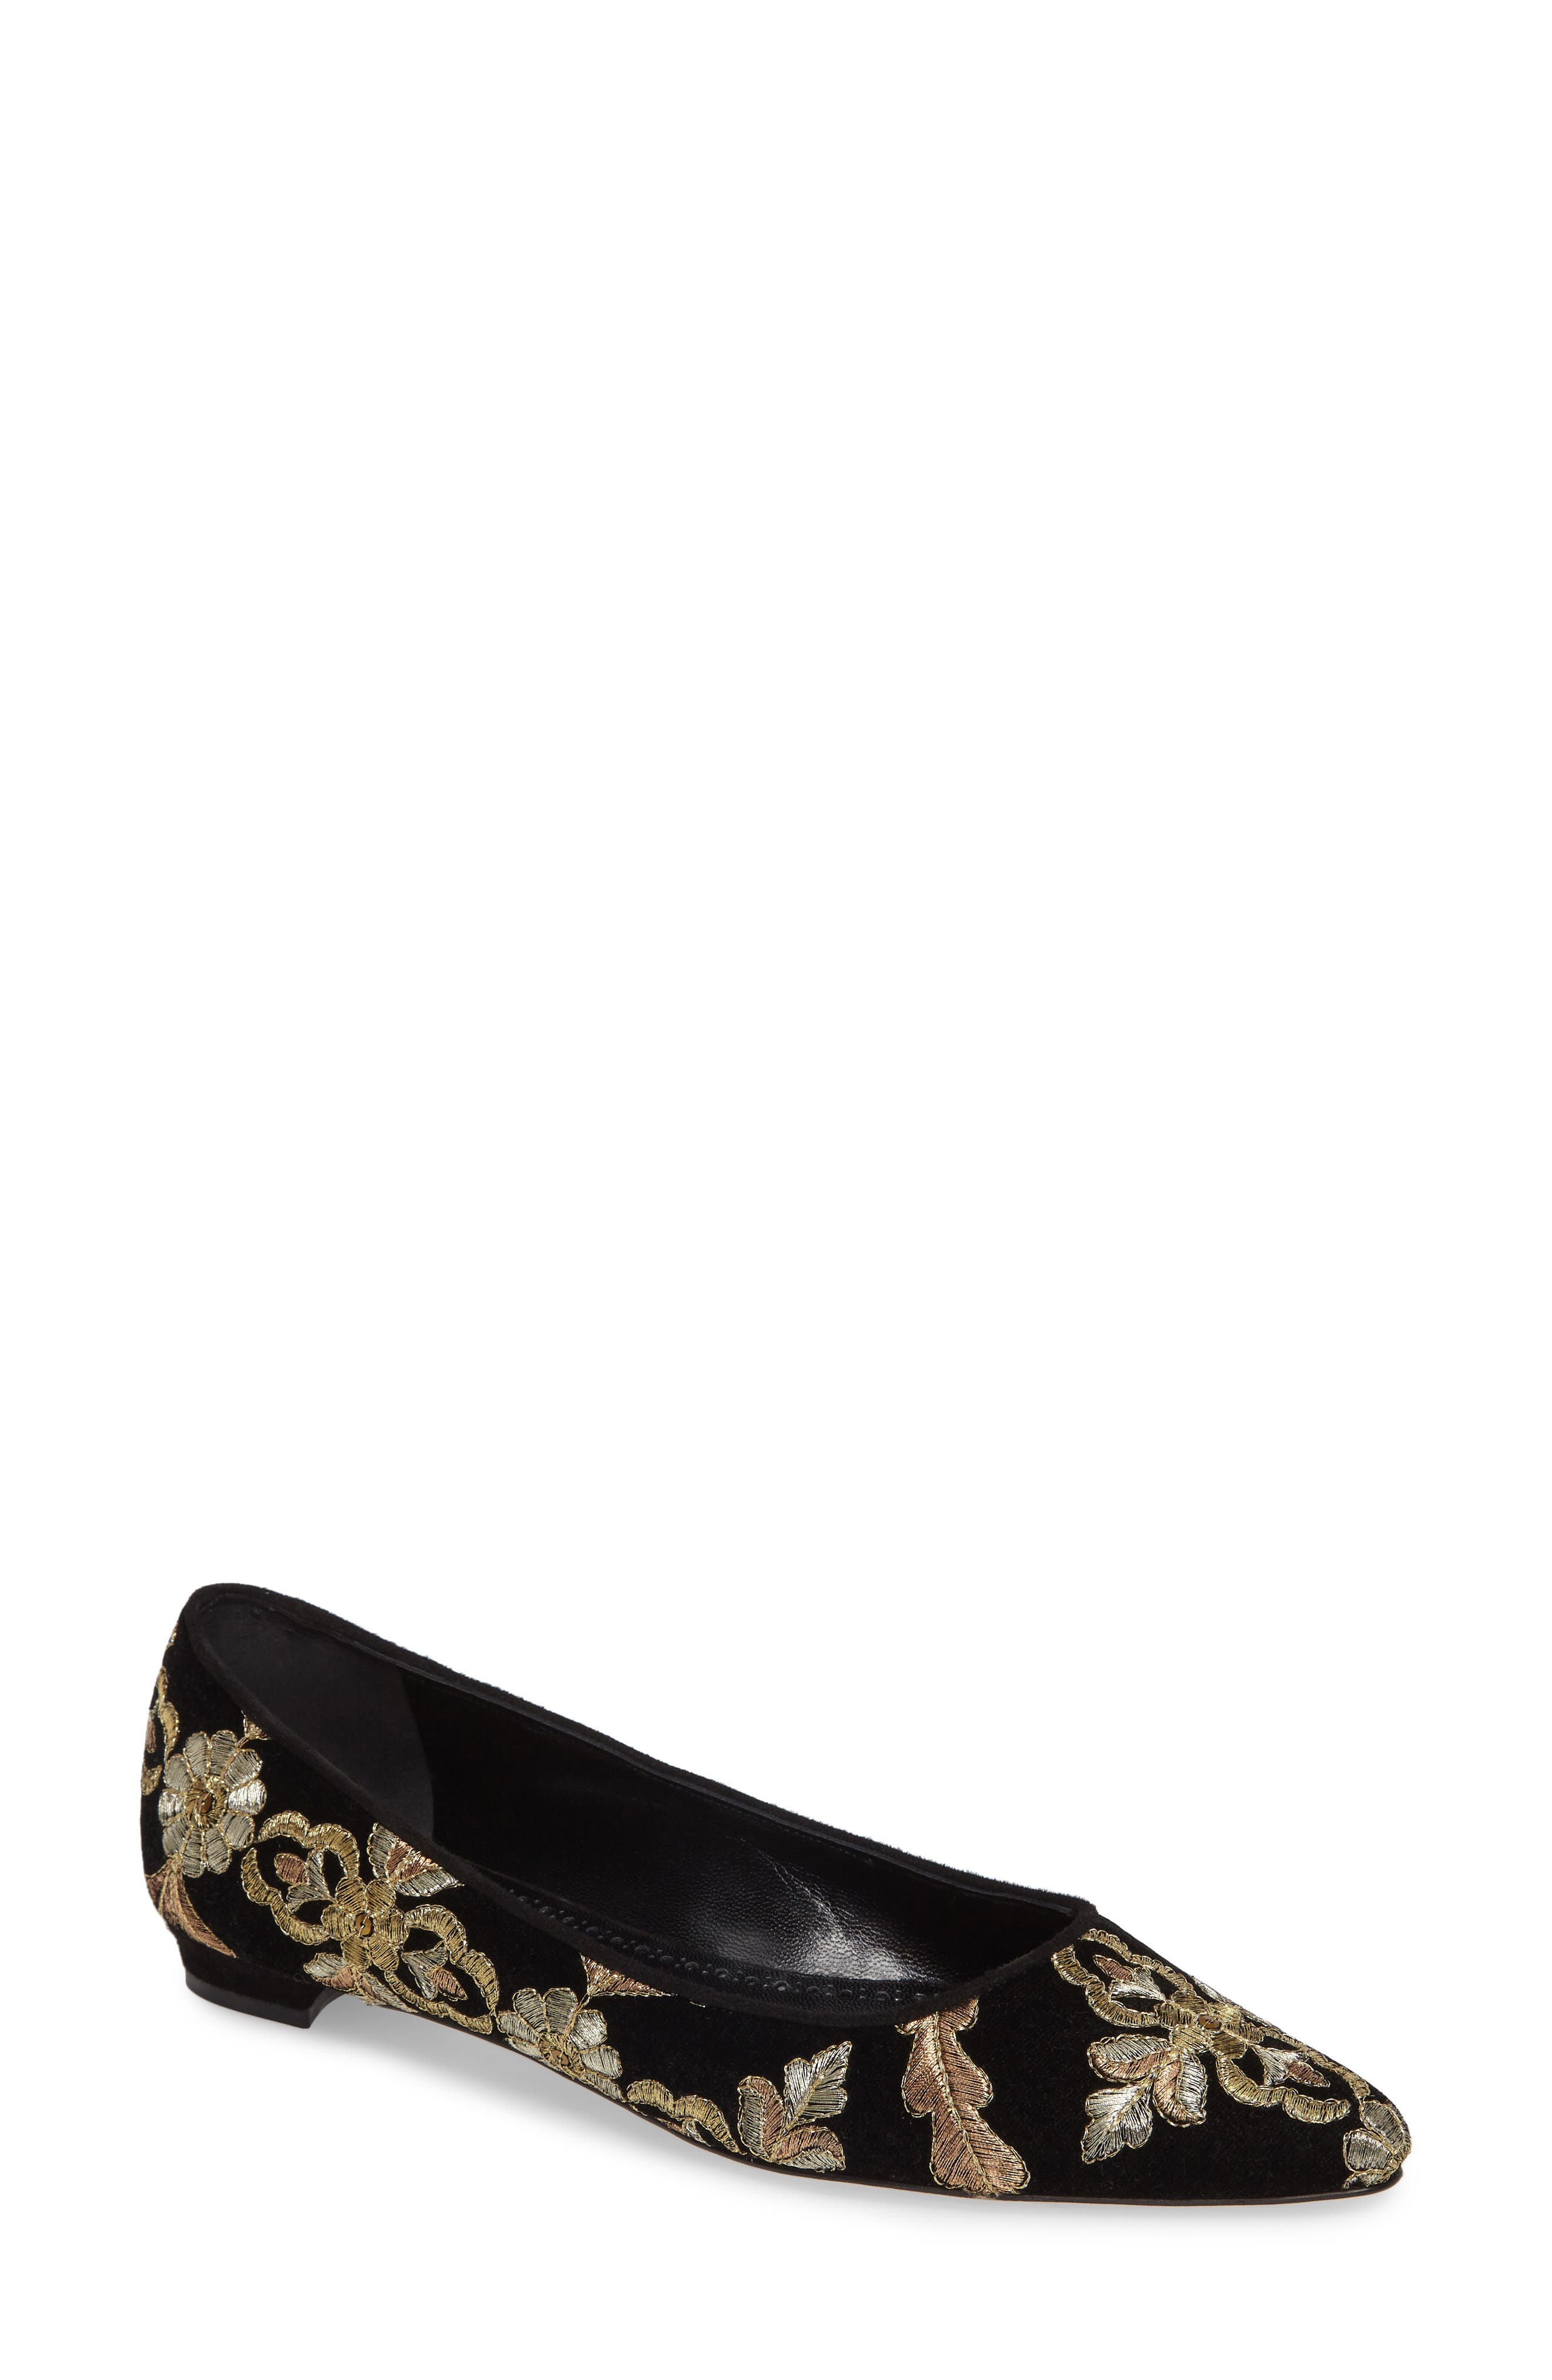 Alternate Image 1 Selected - Manolo Blahnik Tittermo Floral Embroidered Ballet Flat (Women)